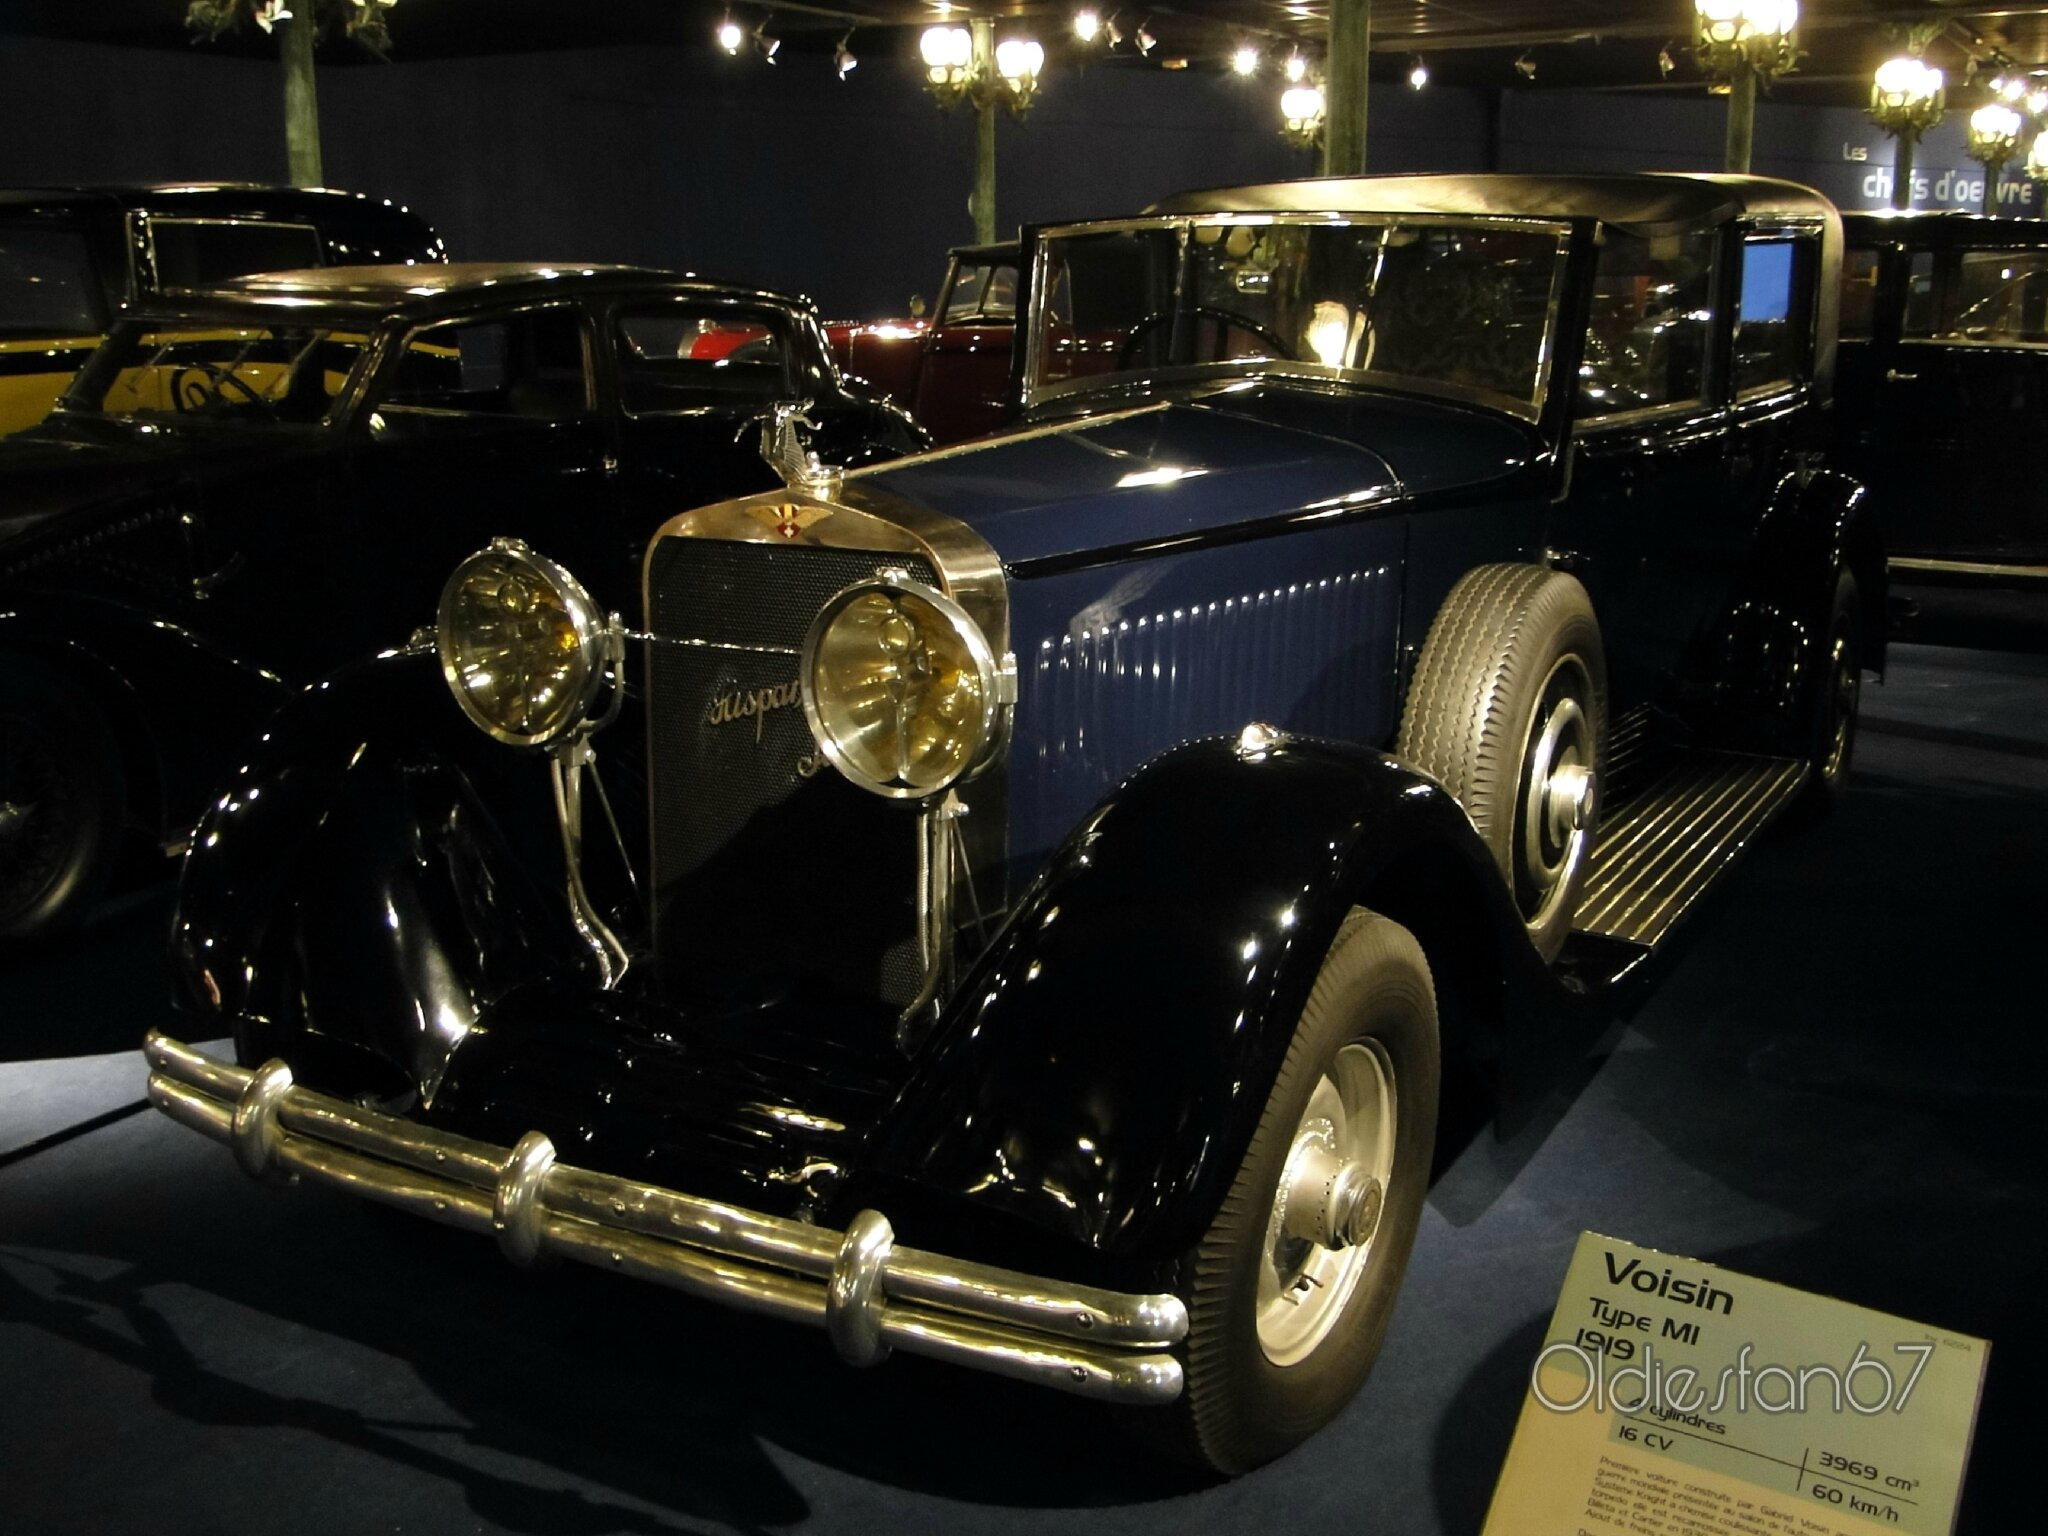 hispano suiza tous les messages sur hispano suiza oldiesfan67 mon blog auto. Black Bedroom Furniture Sets. Home Design Ideas